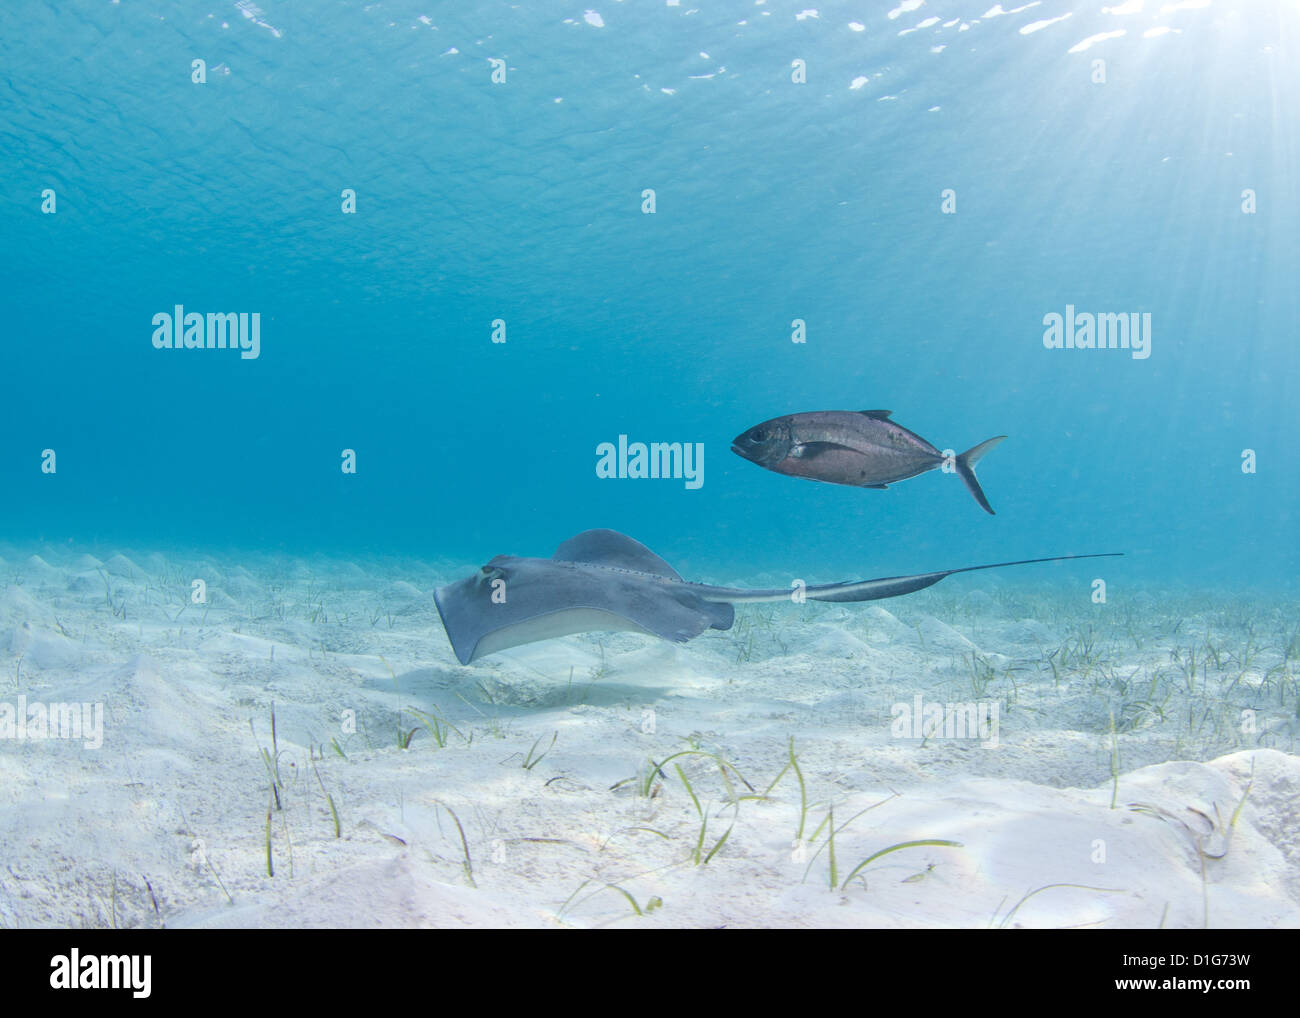 Stingray in White Sand - Stock Image